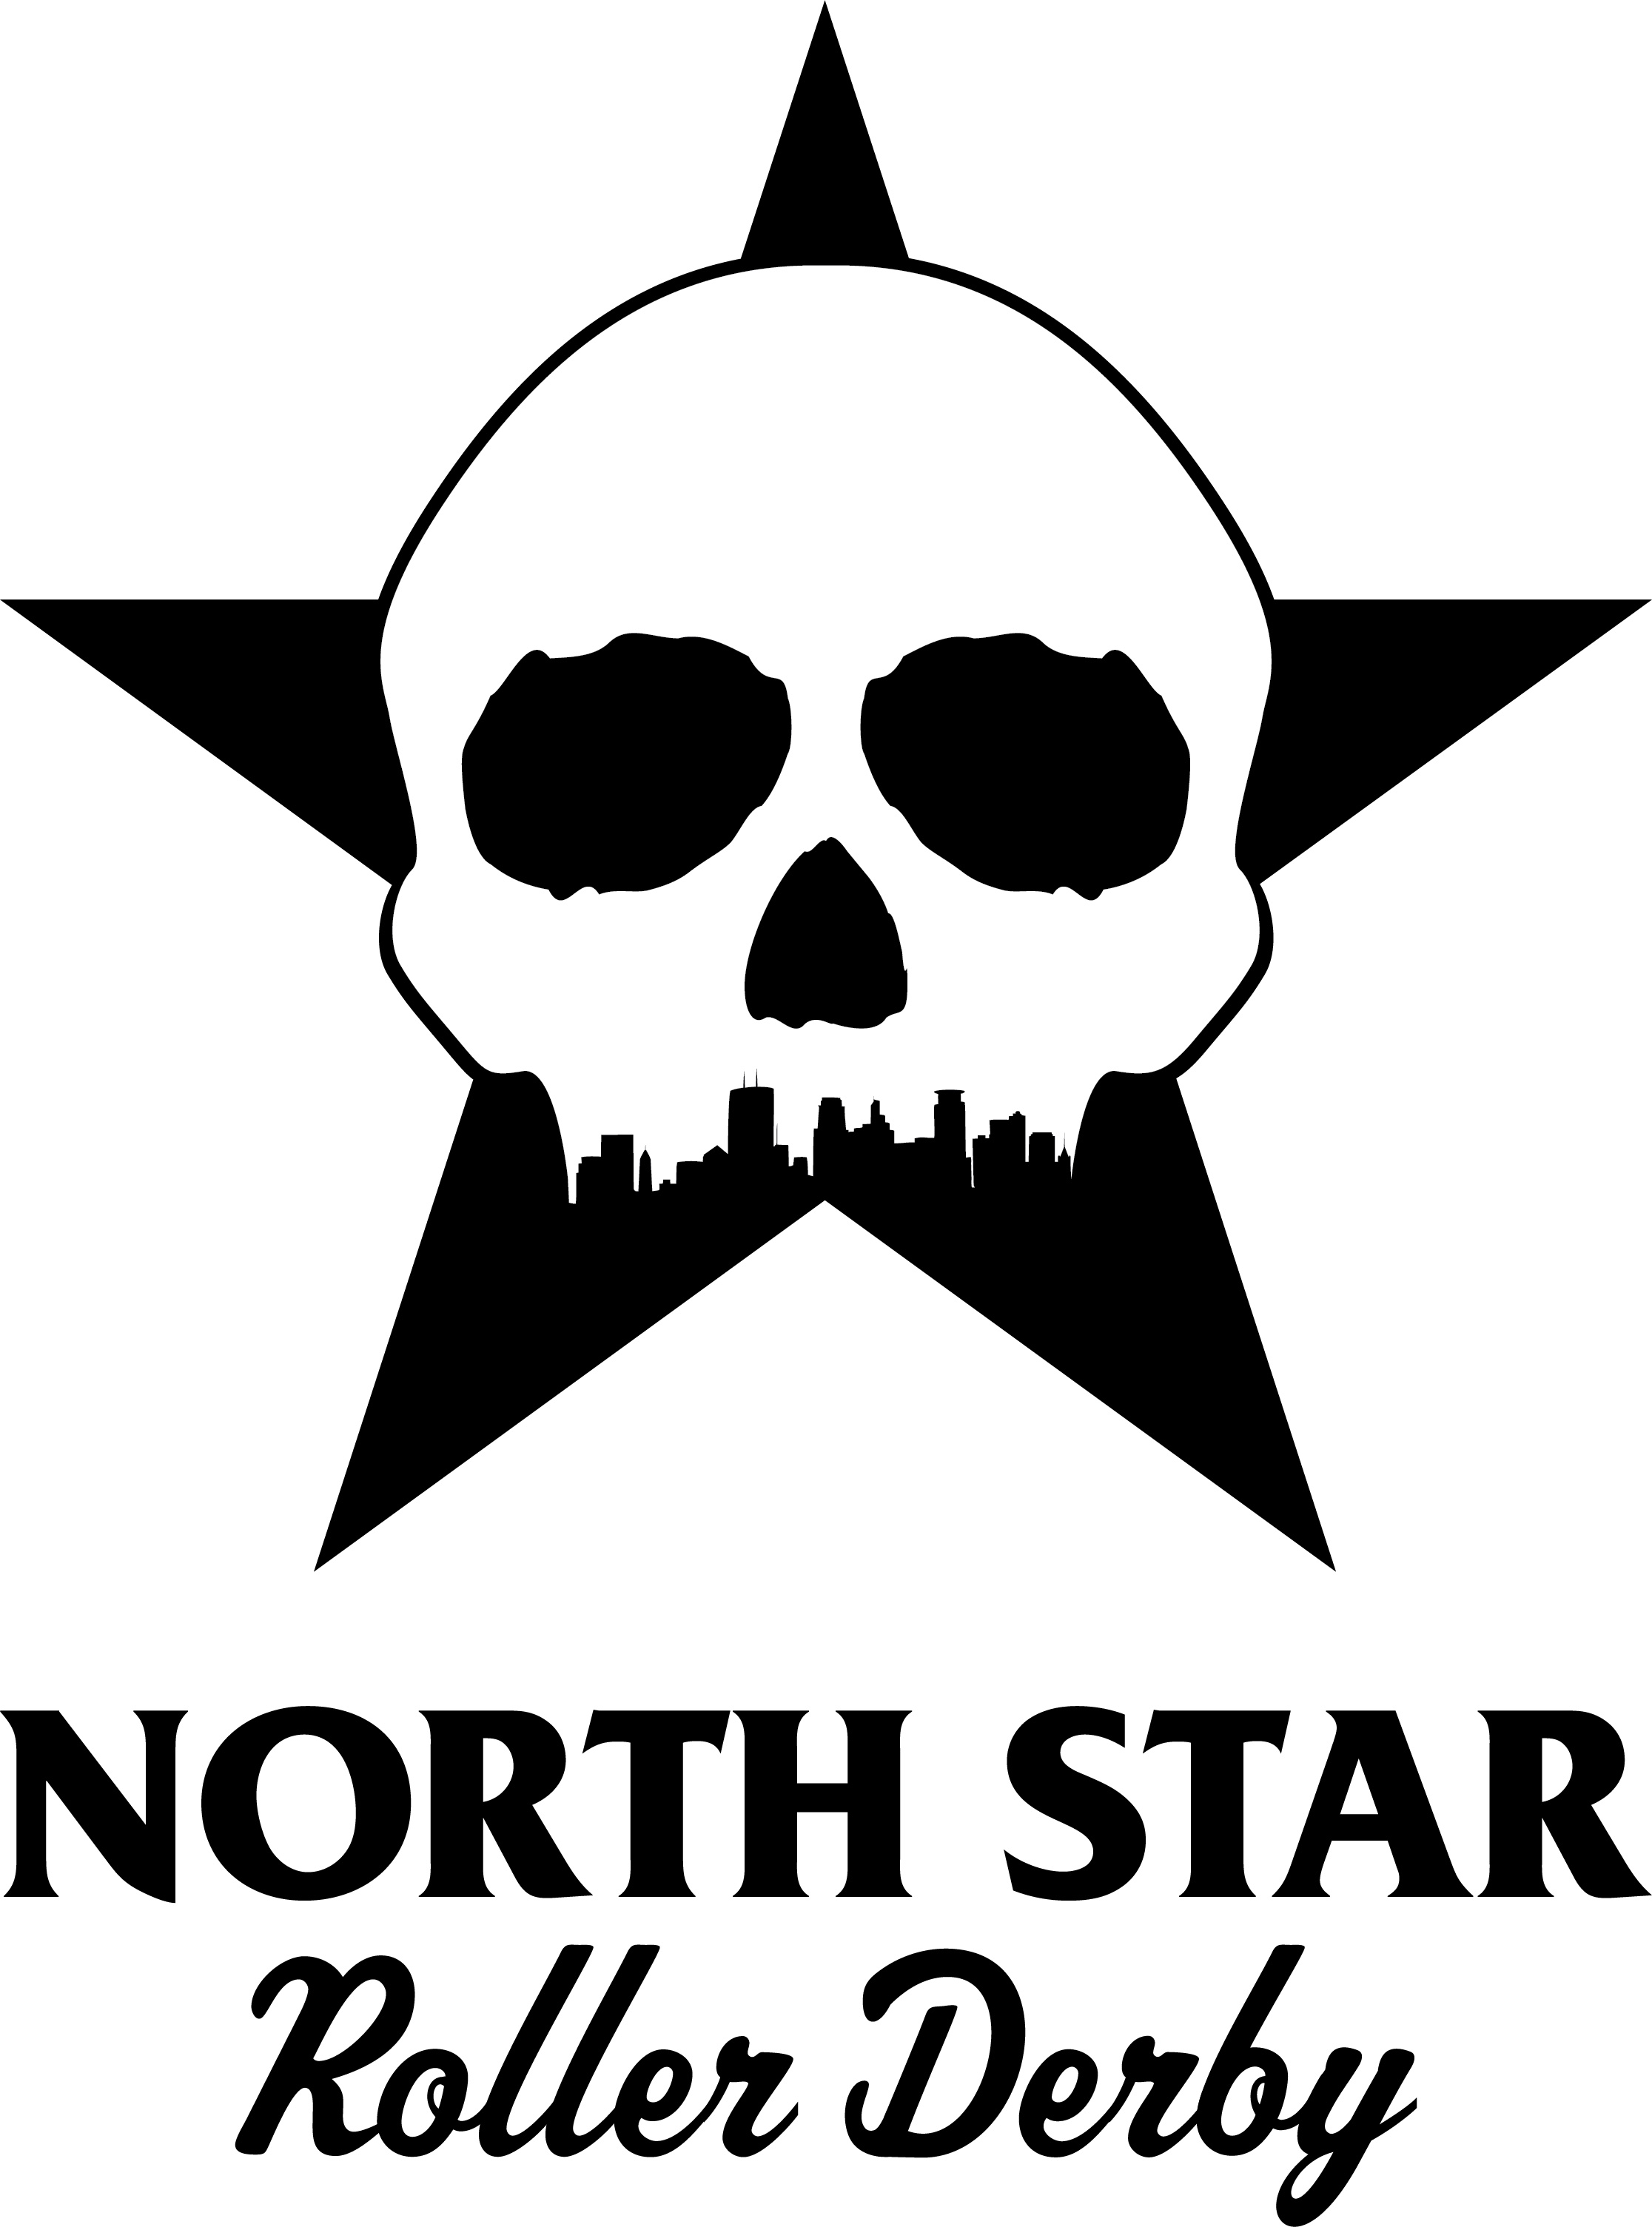 North Star Roller Derby